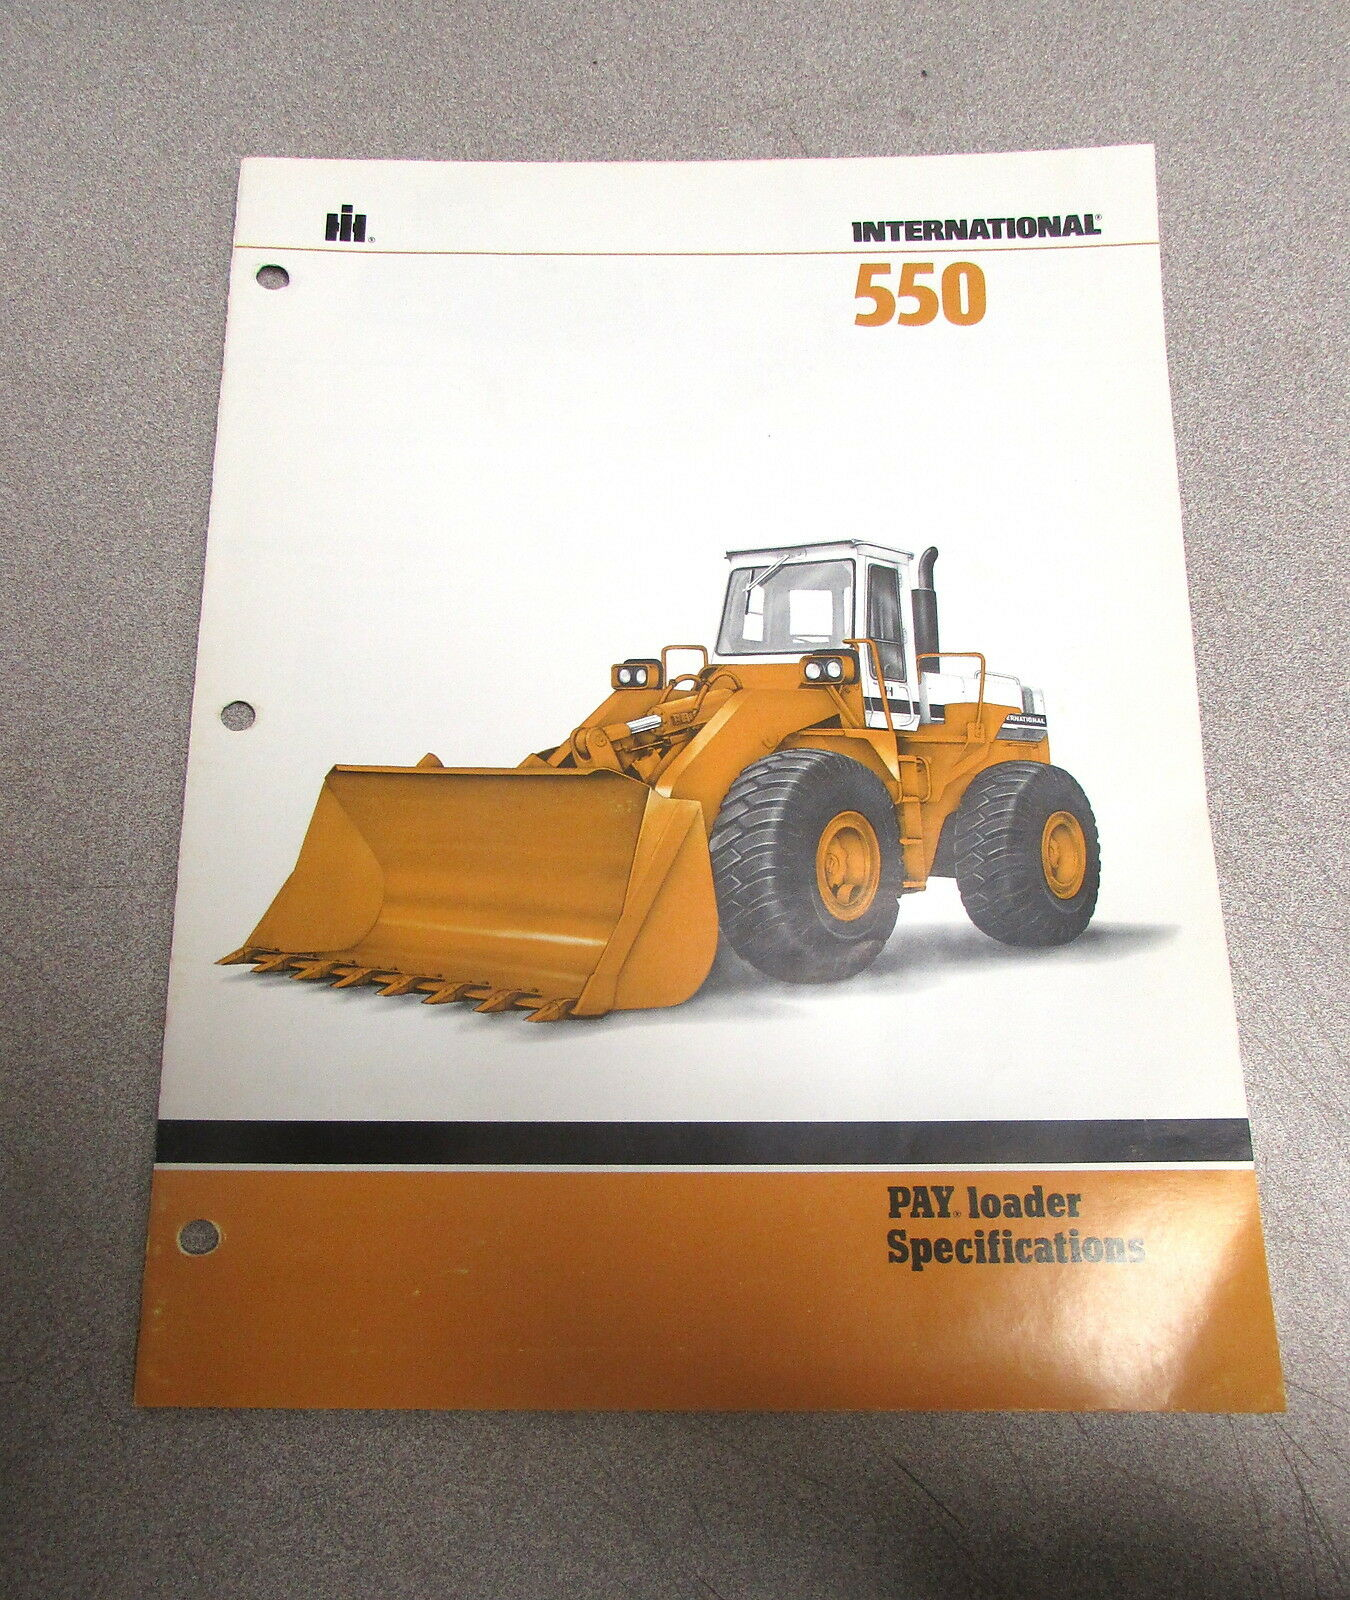 International Hough Dresser 550 Pay Loader Brochure Specifications Manual  1981 1 of 1Only 1 available ...